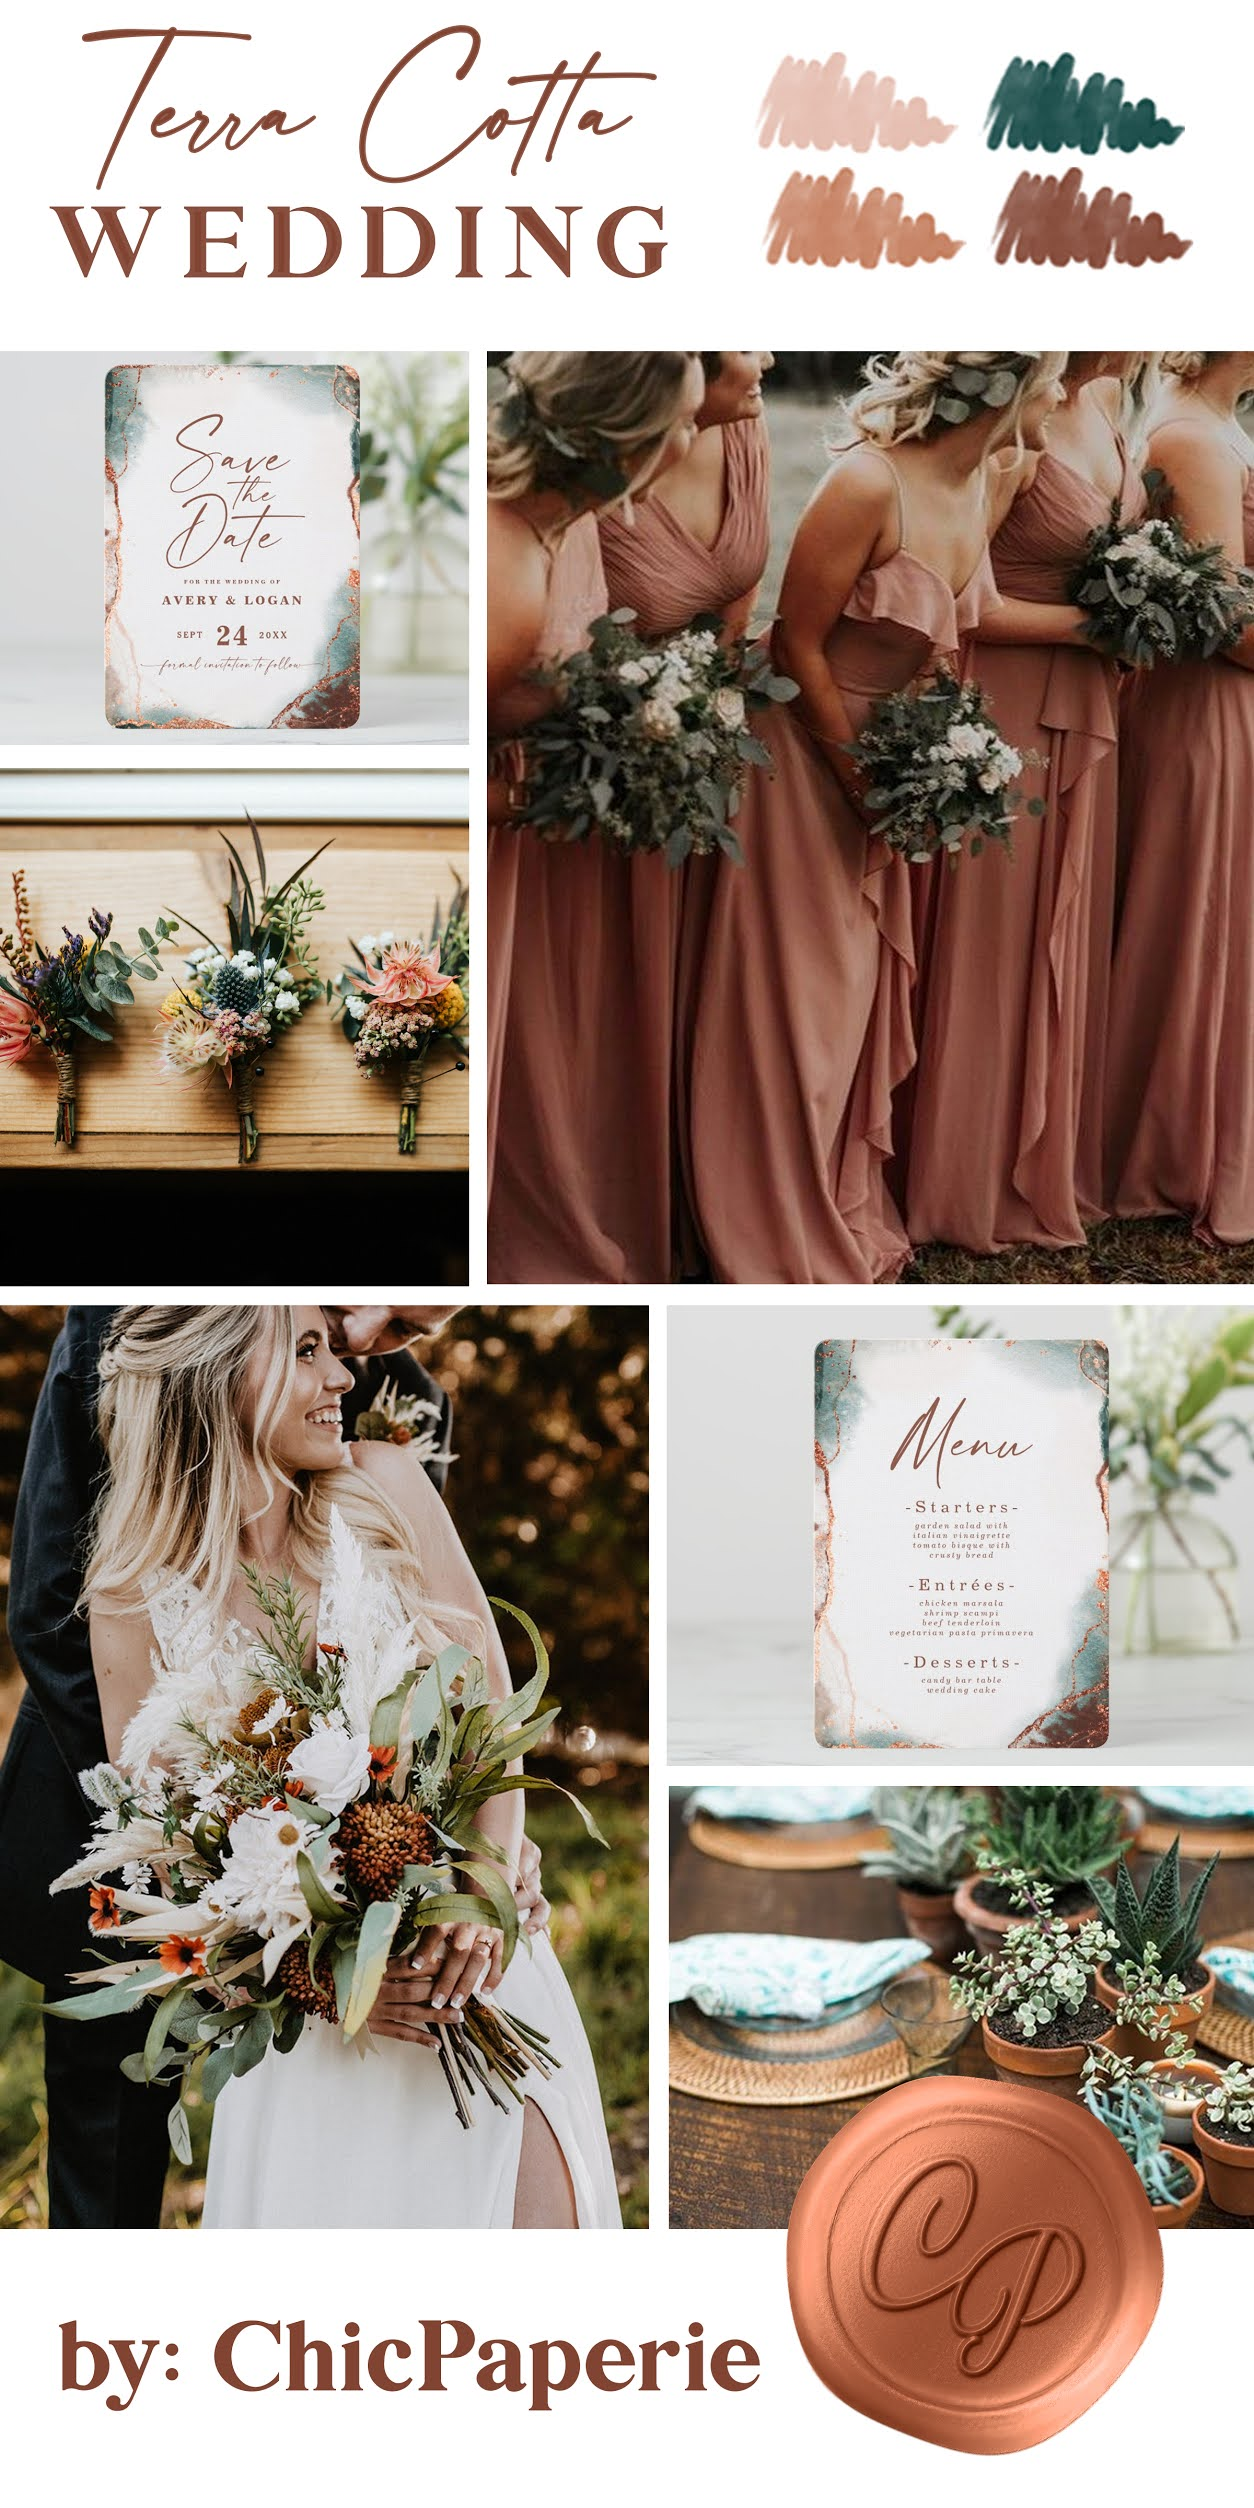 Terra Cotta Wedding Colors: Dusty Pink, Dark Green, Burnt Sienna, and Terracotta